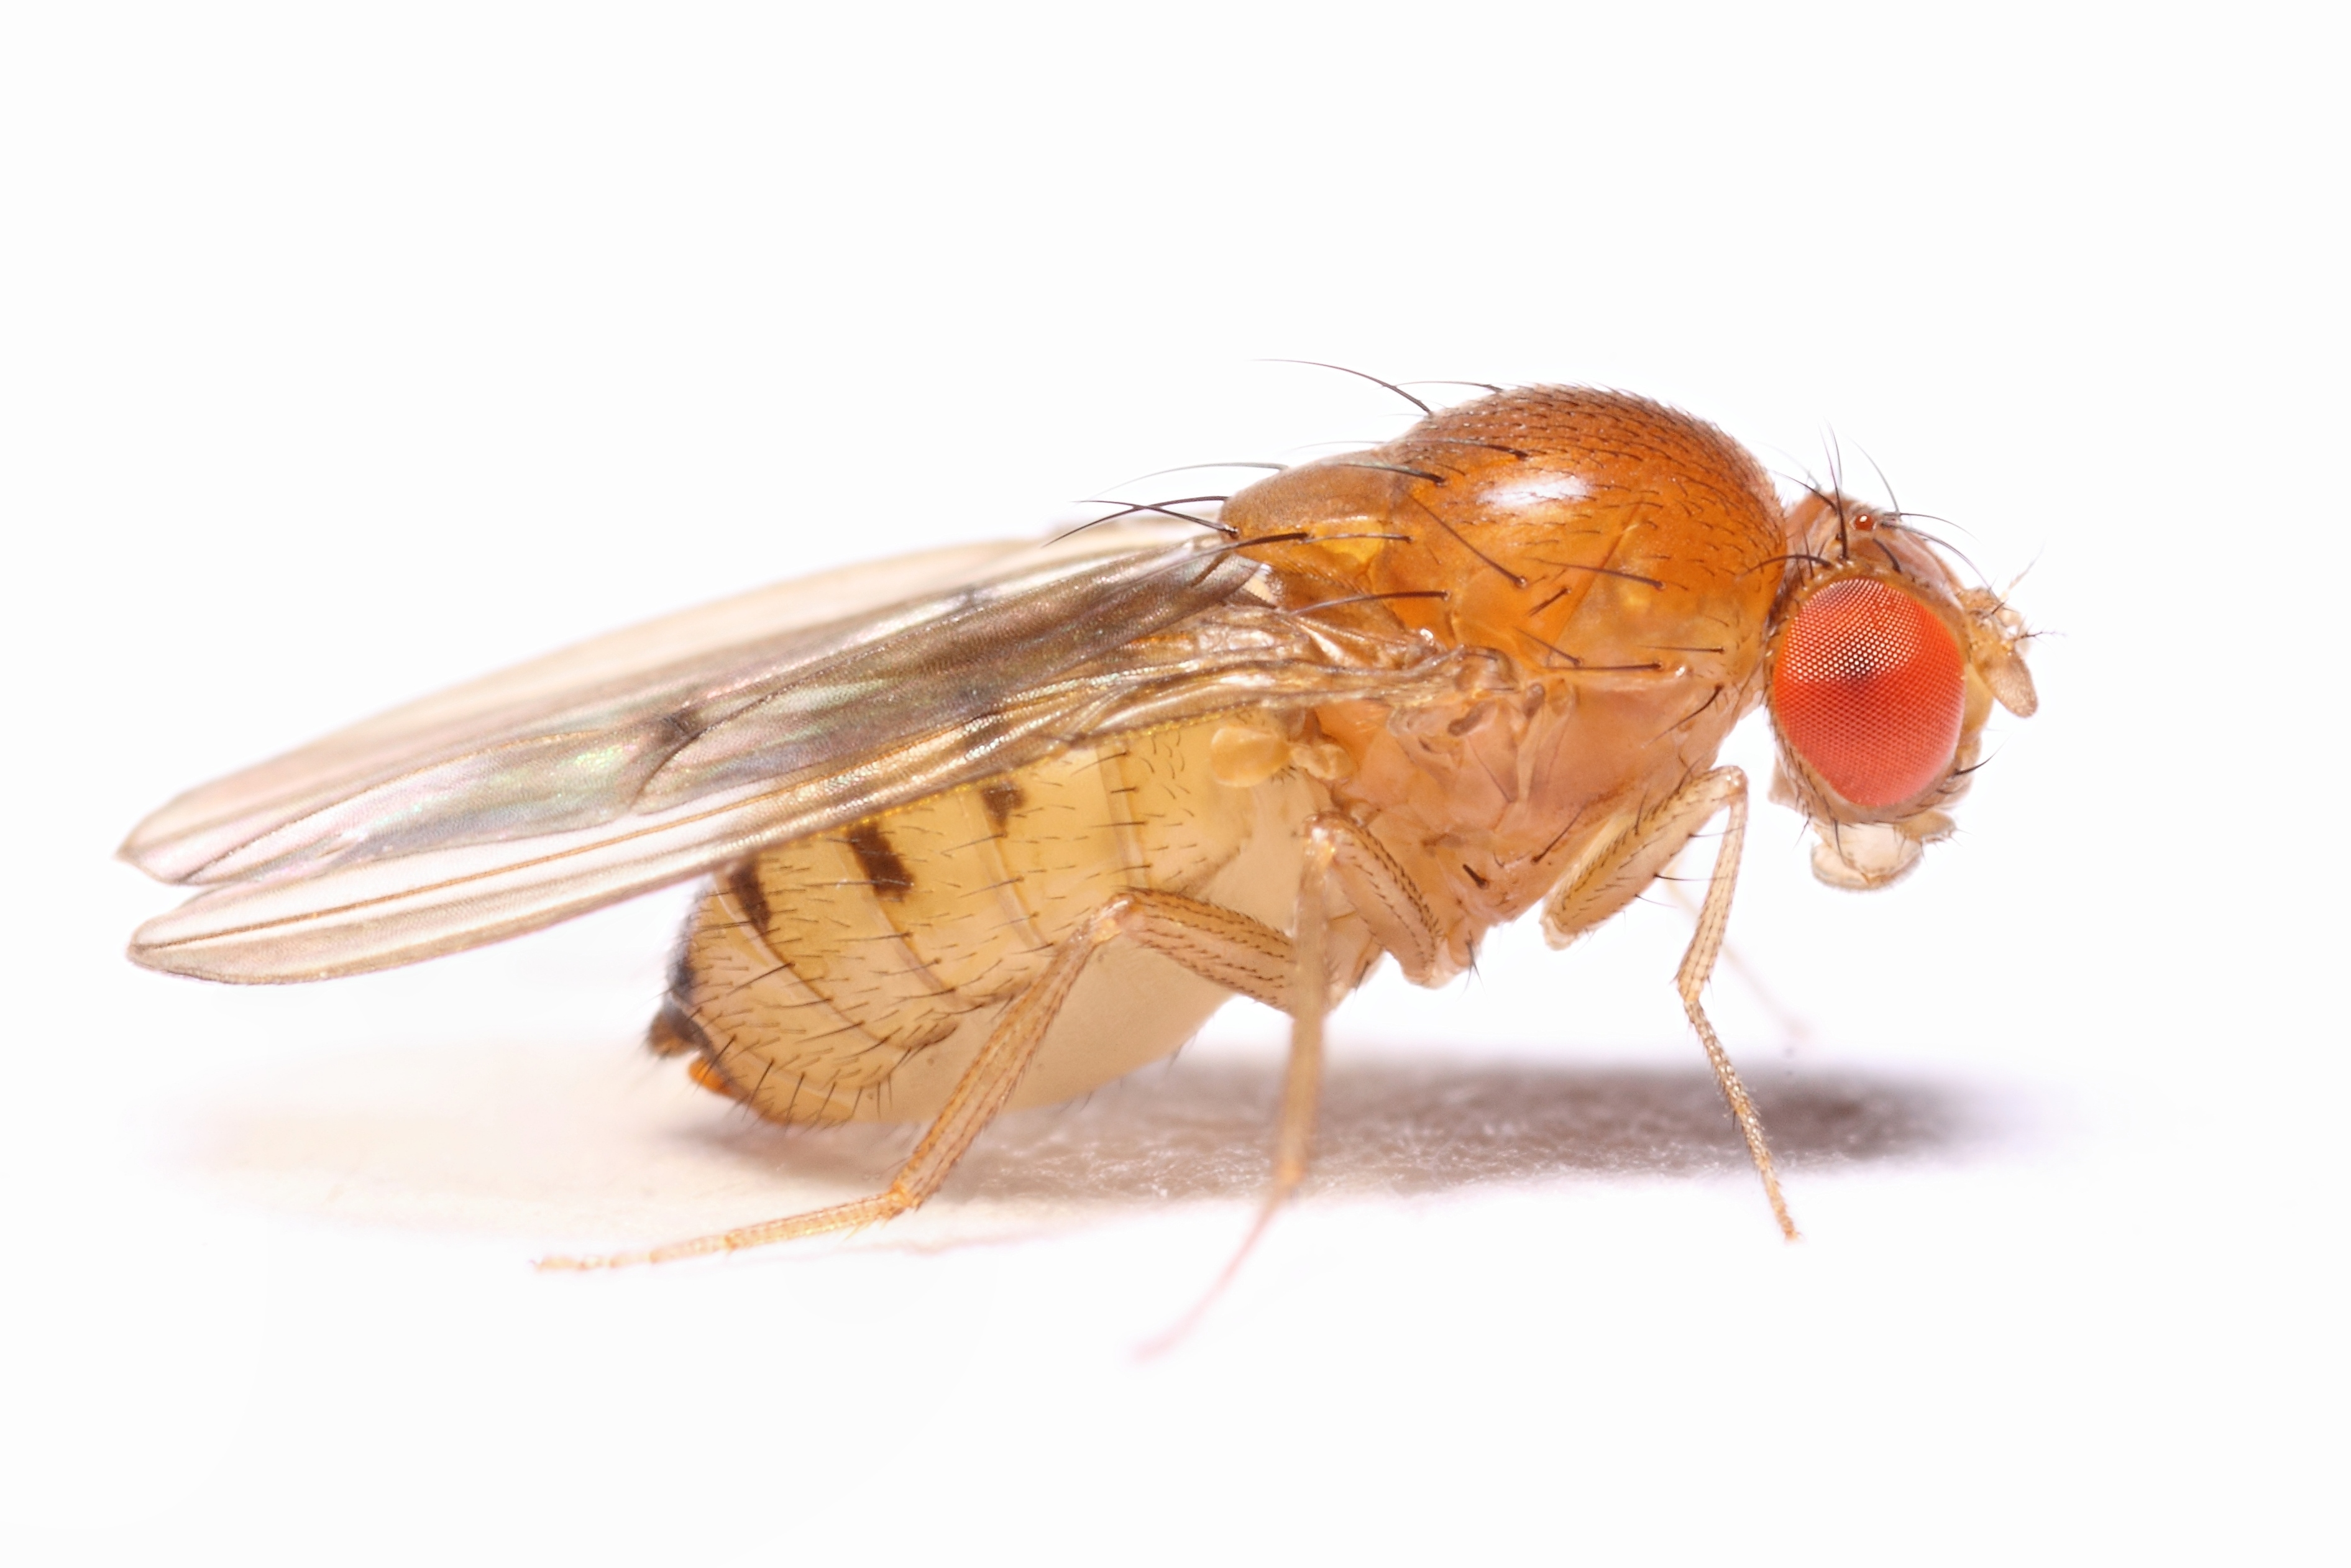 fruit fly lab The purpose of the lab report is for you to demonstrate your ability to deduct a simple teclmique reveals that genes controlling eye color in flies.